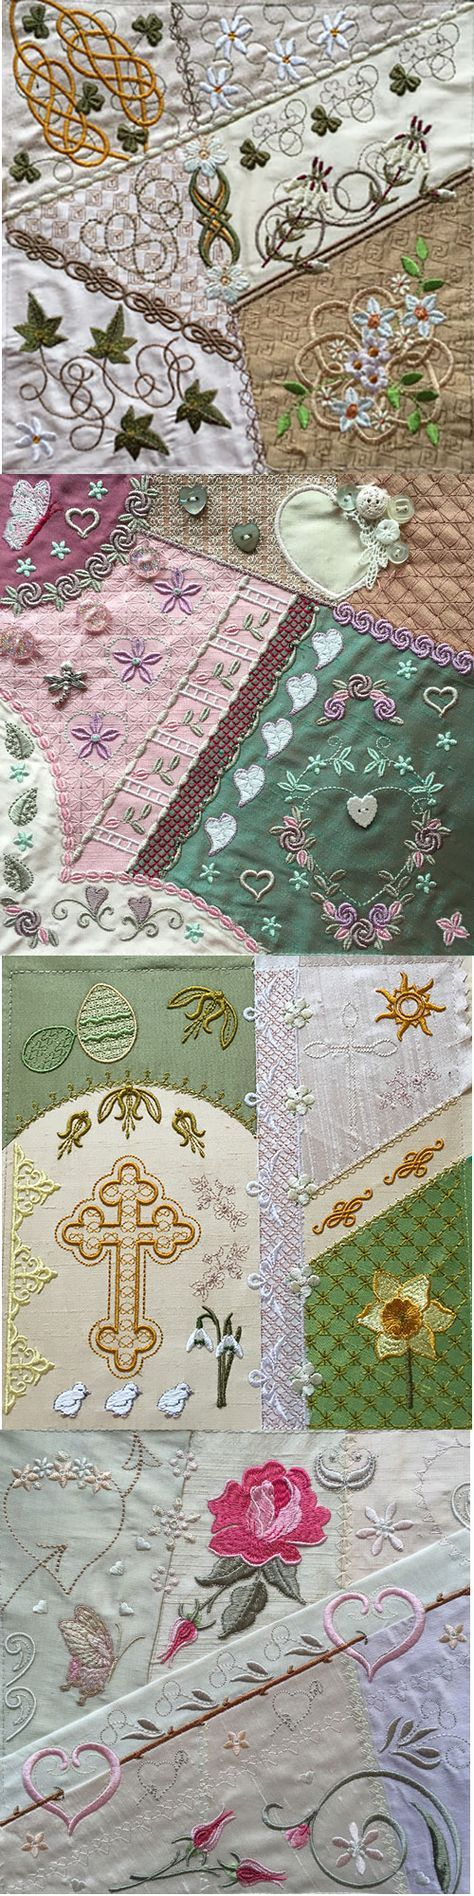 More Romantic Crazy Quilt blocks from Graceful Embroidery